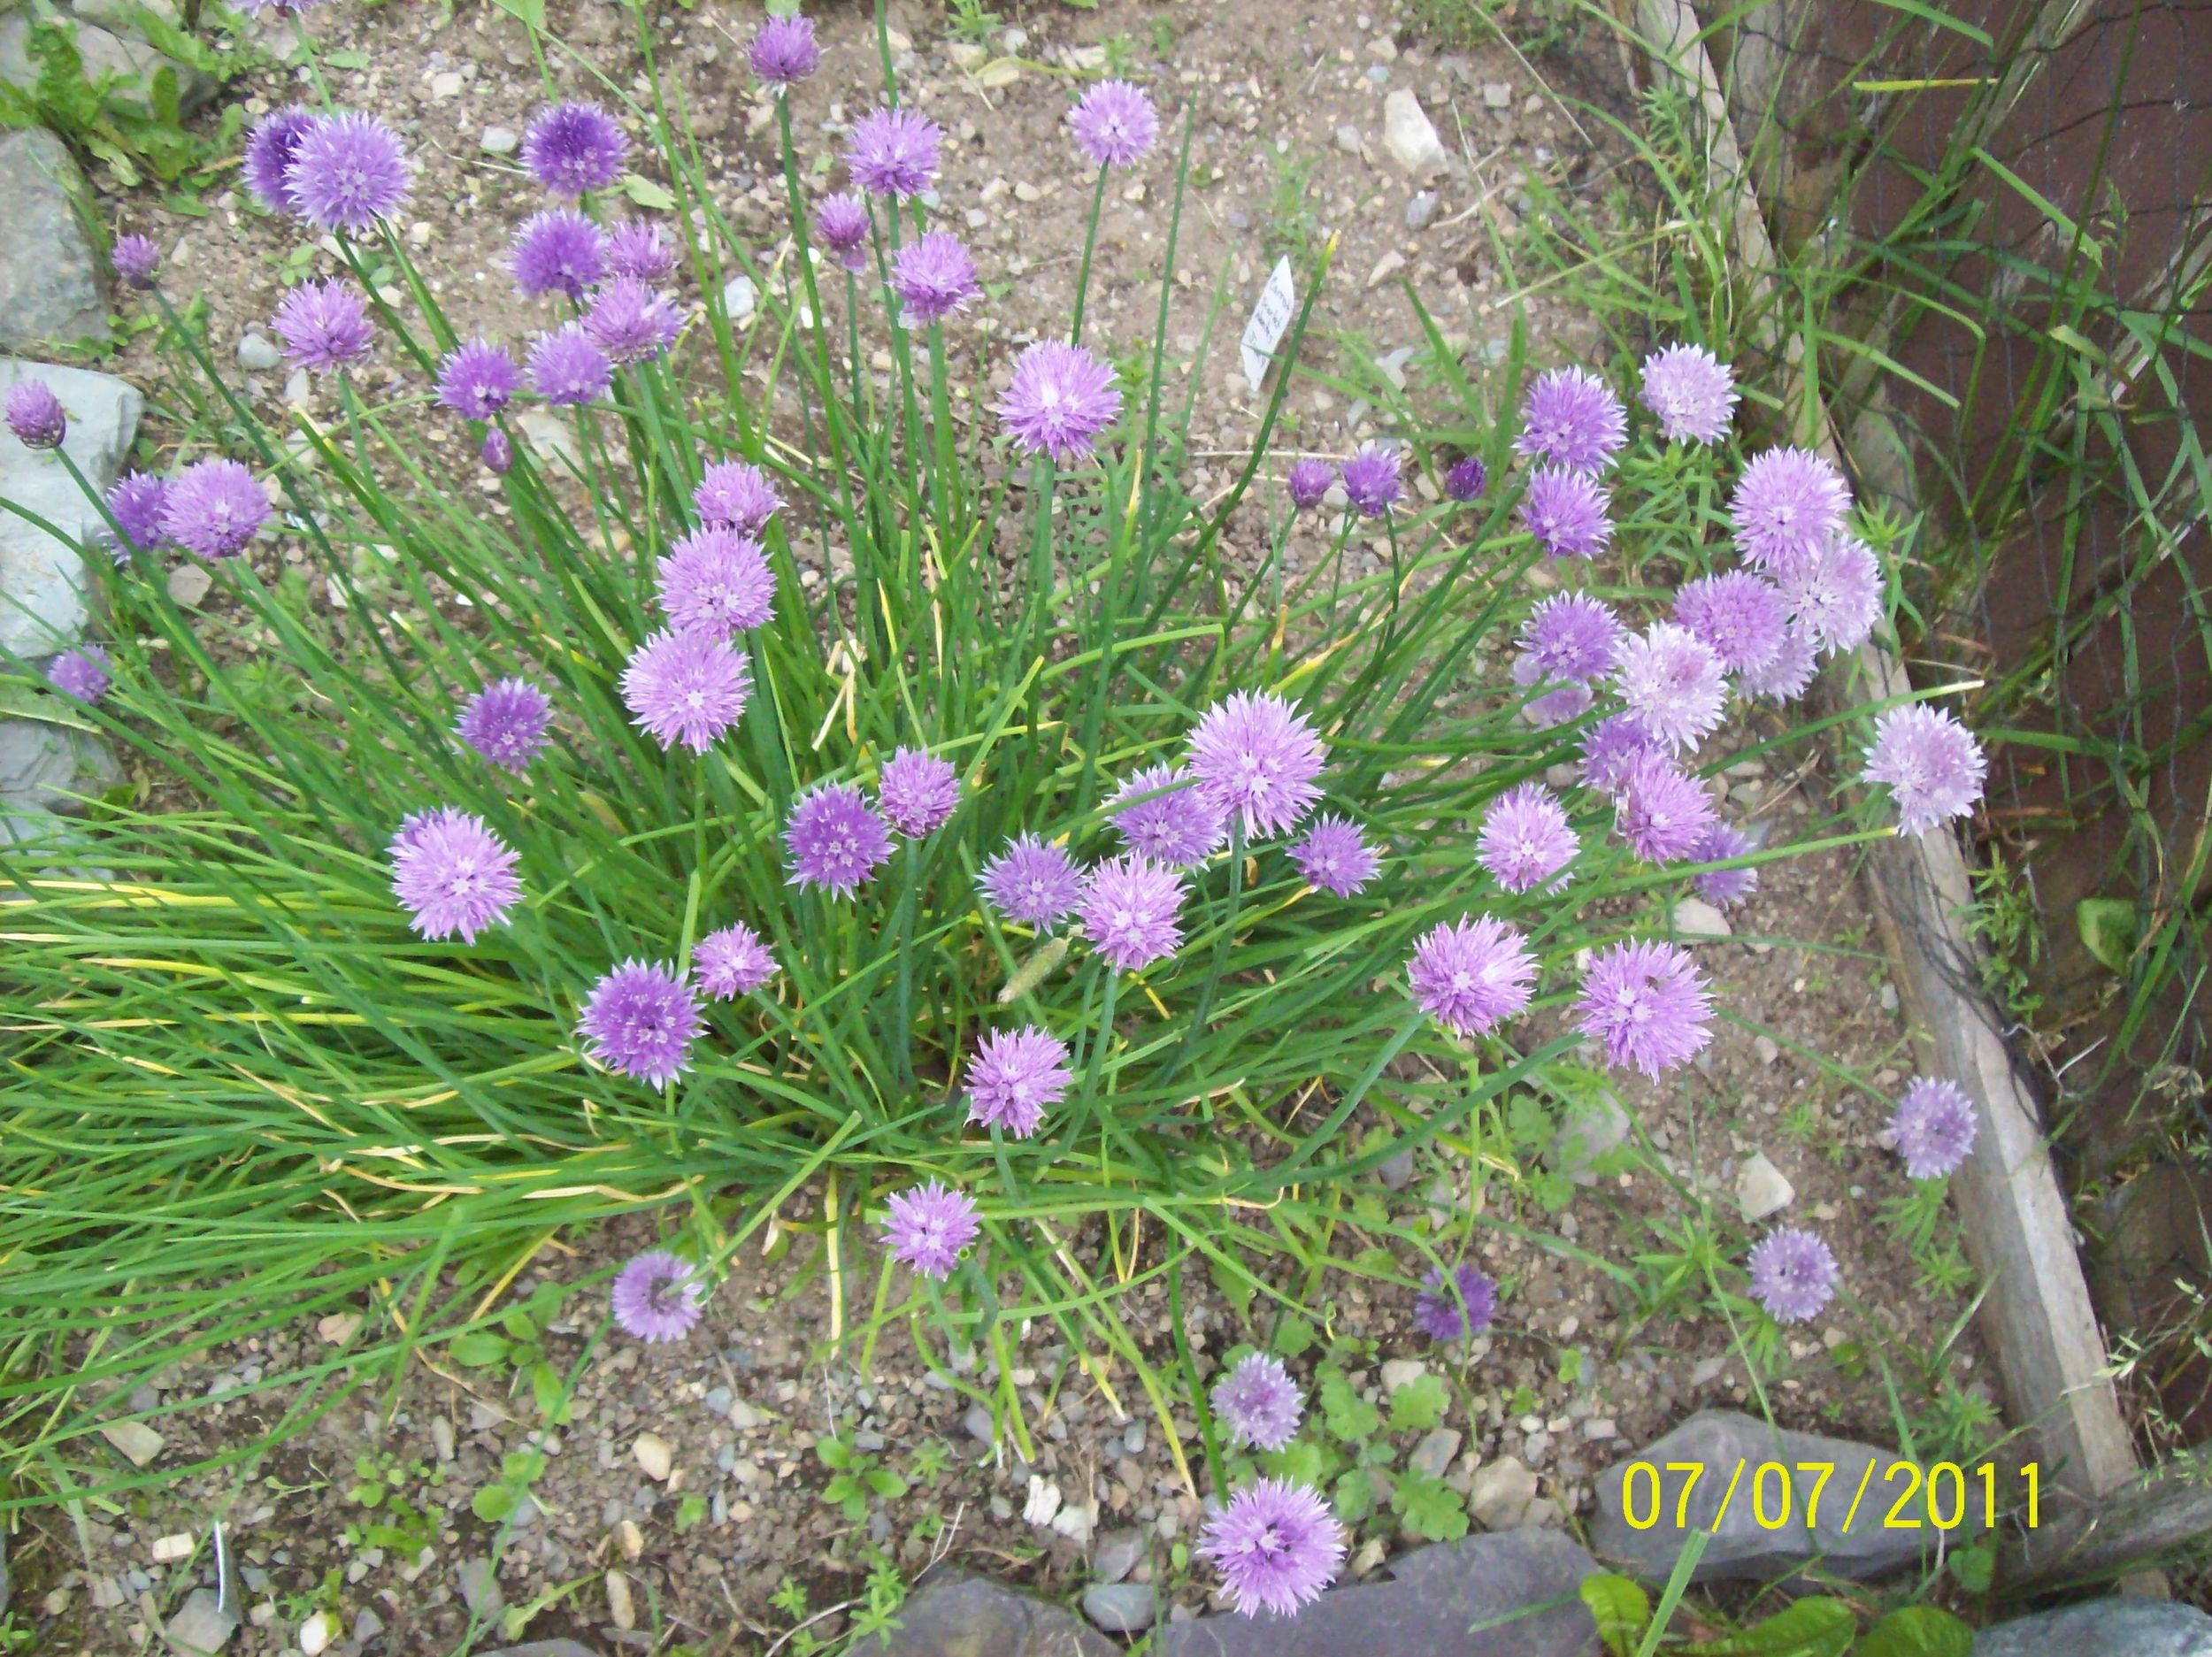 Lots of chives in the garden! Photo credit Rachelle Batstone